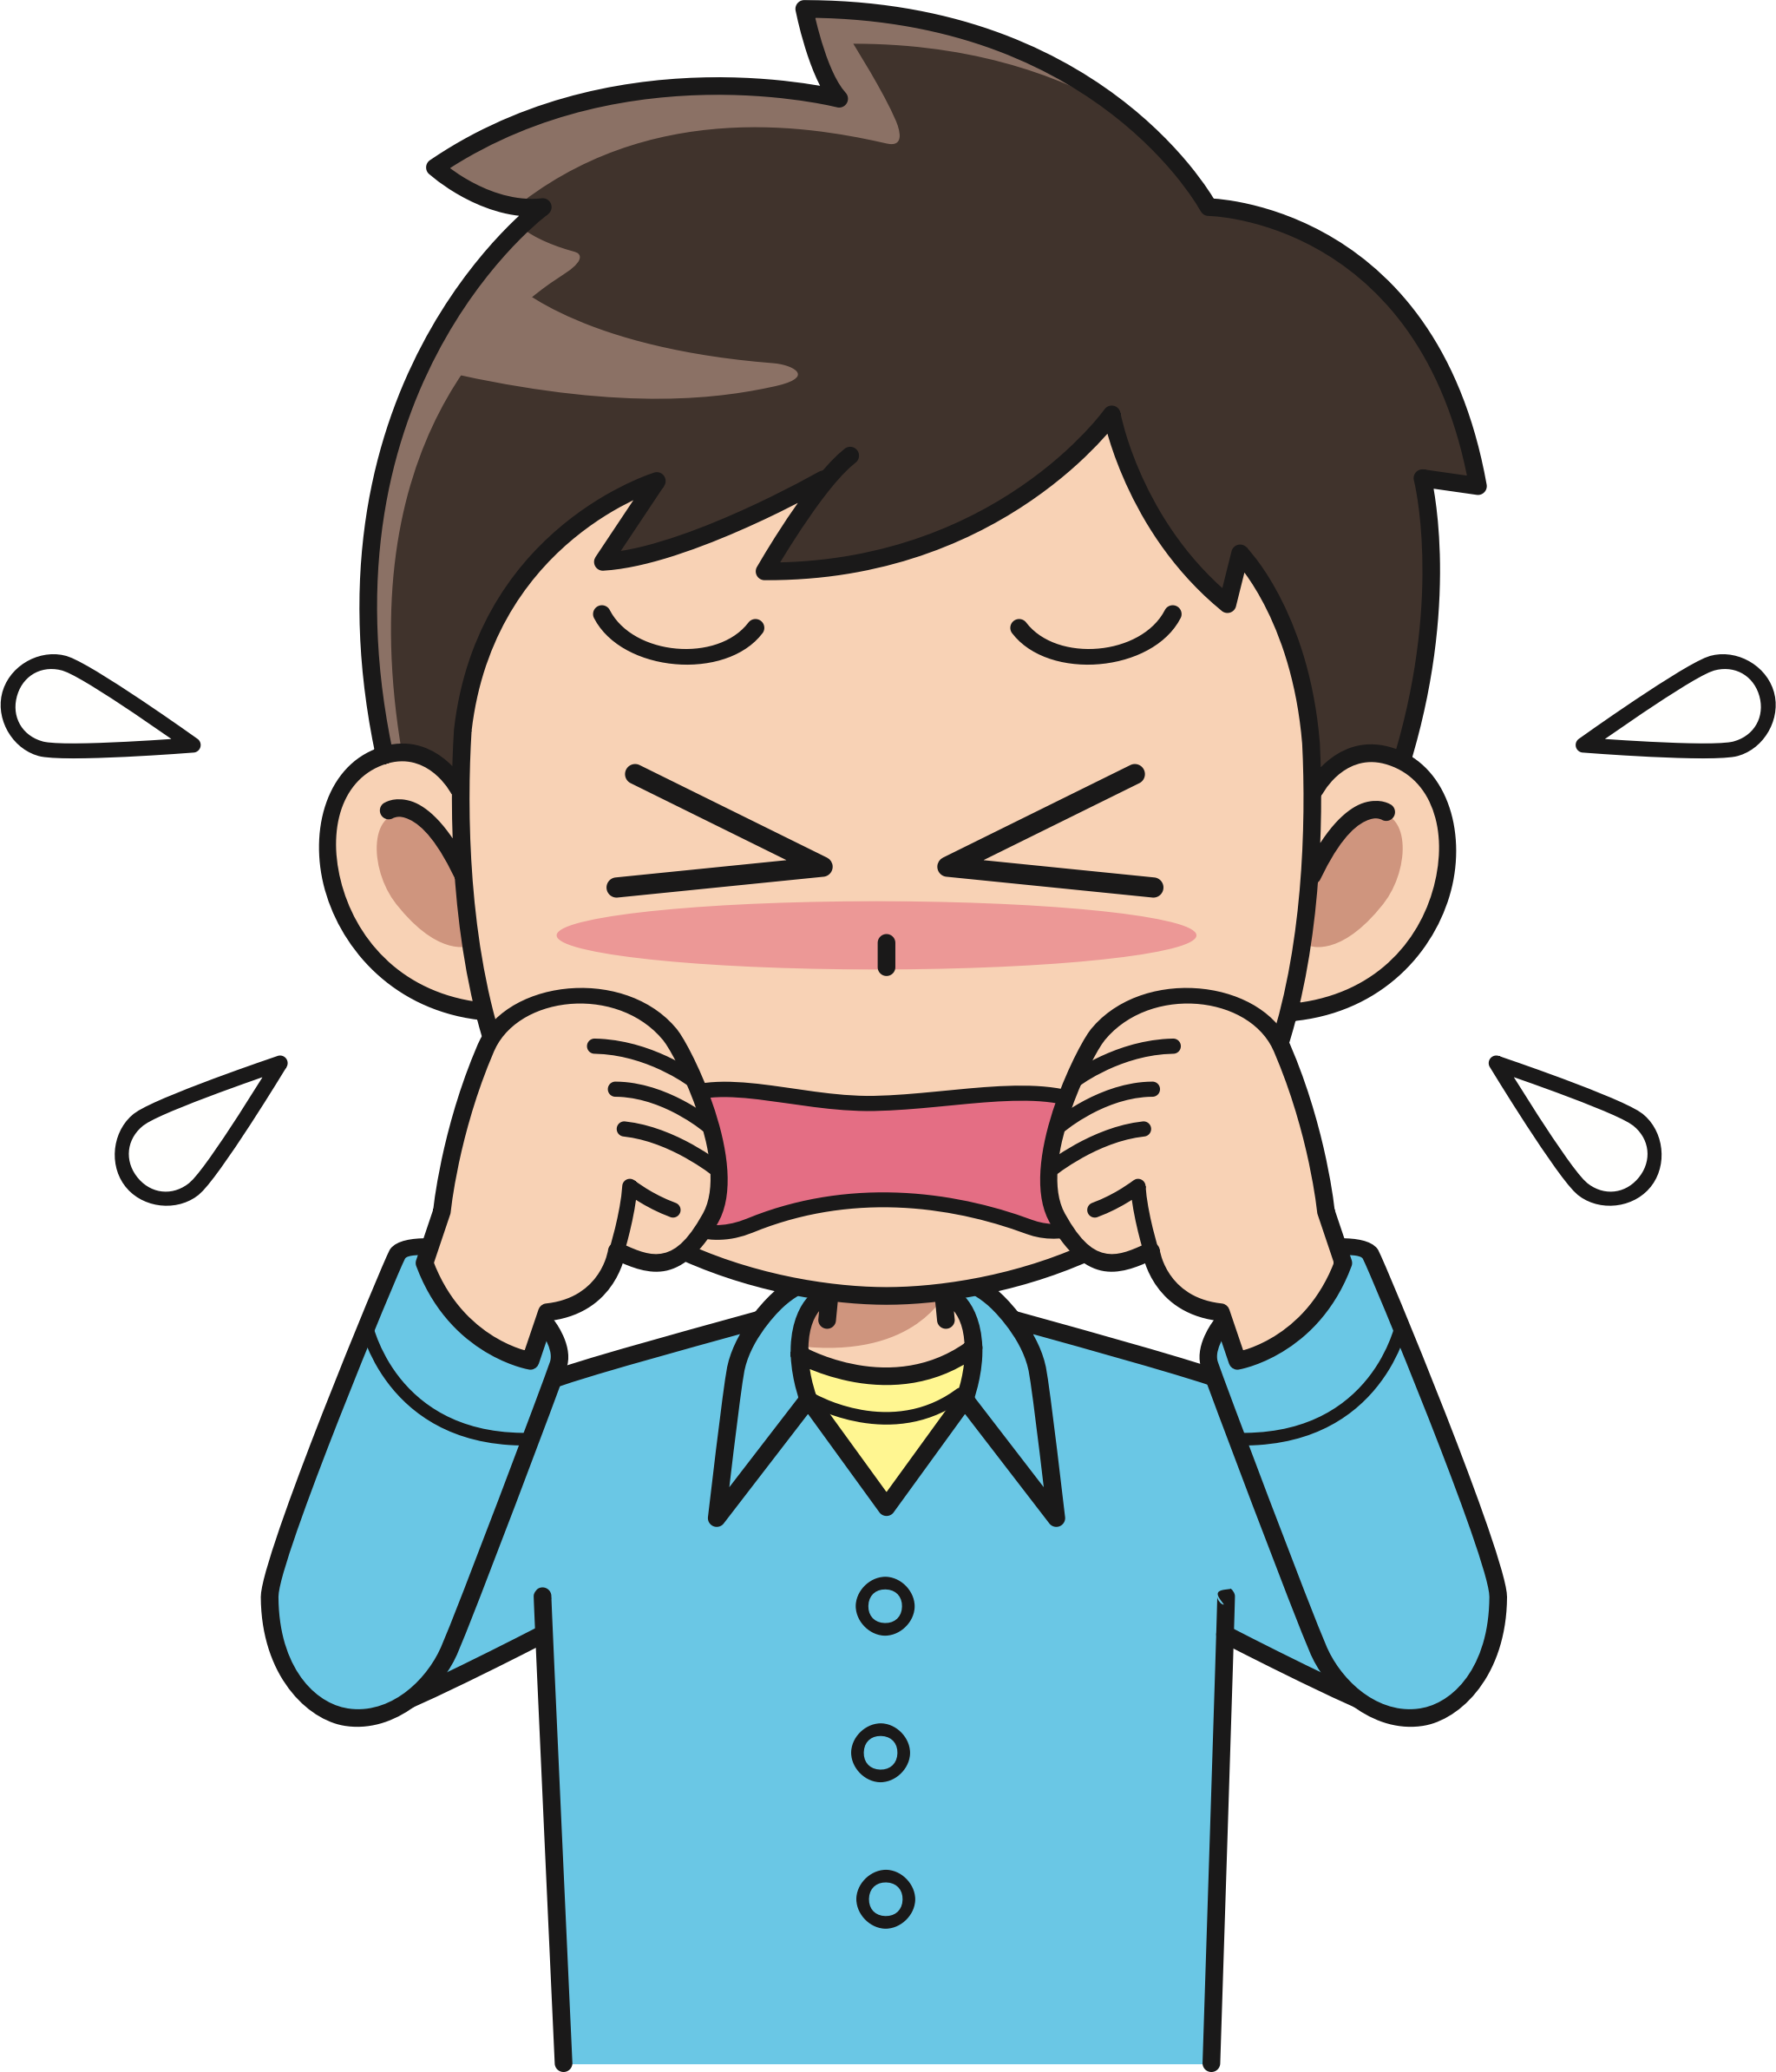 Cry clipart animated. Crying male big image